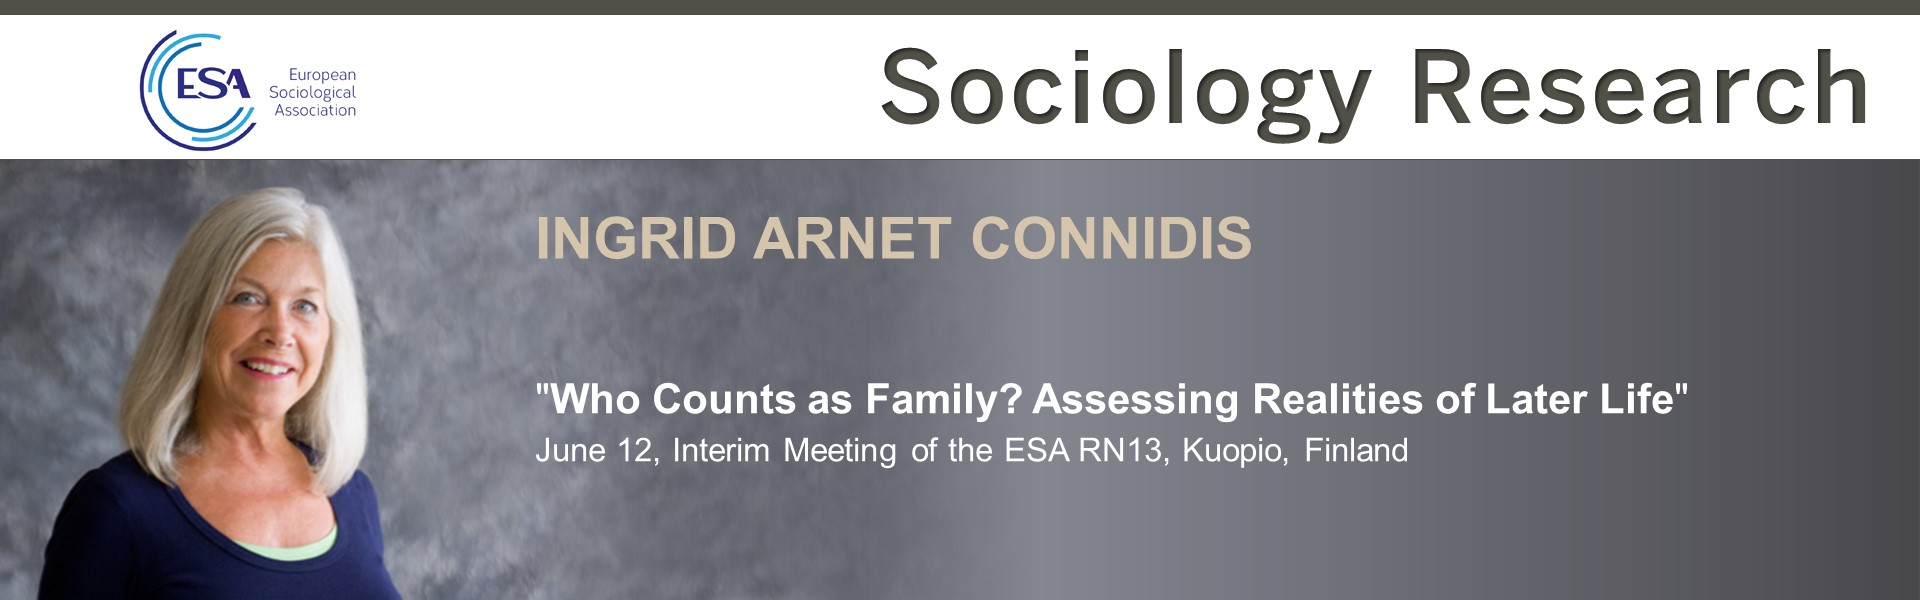 "Ingrid Connidis presenting keynote address ""Who Counts as Family? Assssing Realitiess of Later Life"" at the European Sociological Association Interim Meeting of the ESA RN13 June 12 in Kuopio, Finlan"